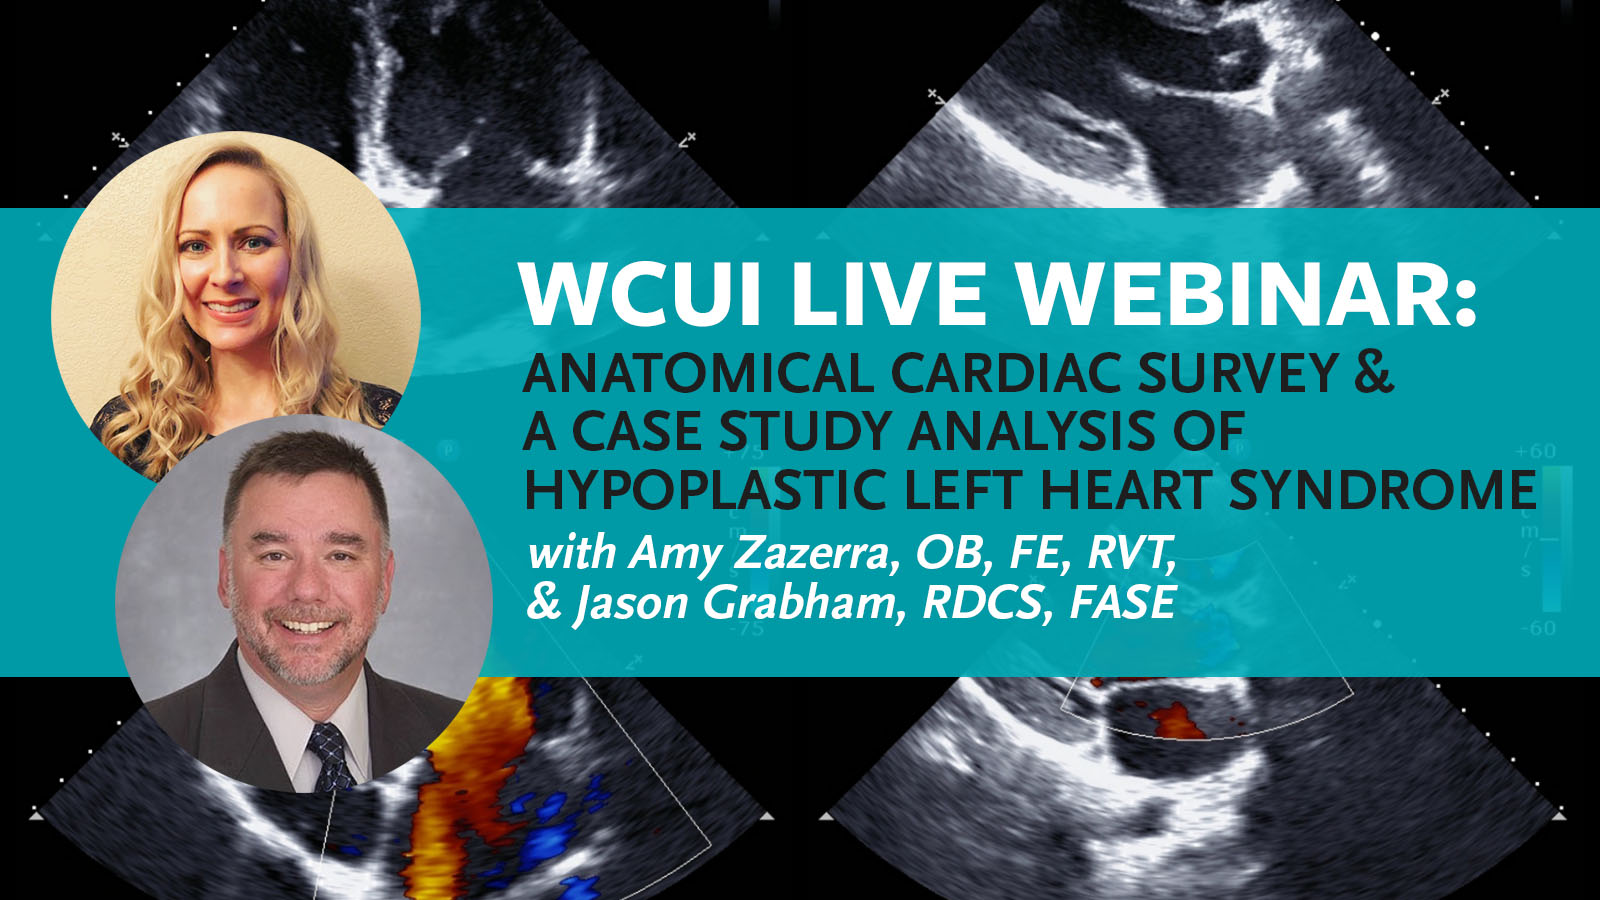 Image introducing our latest live CME webinar with head shots of our guest speakers, Amy Zazerra and Jason Grabham